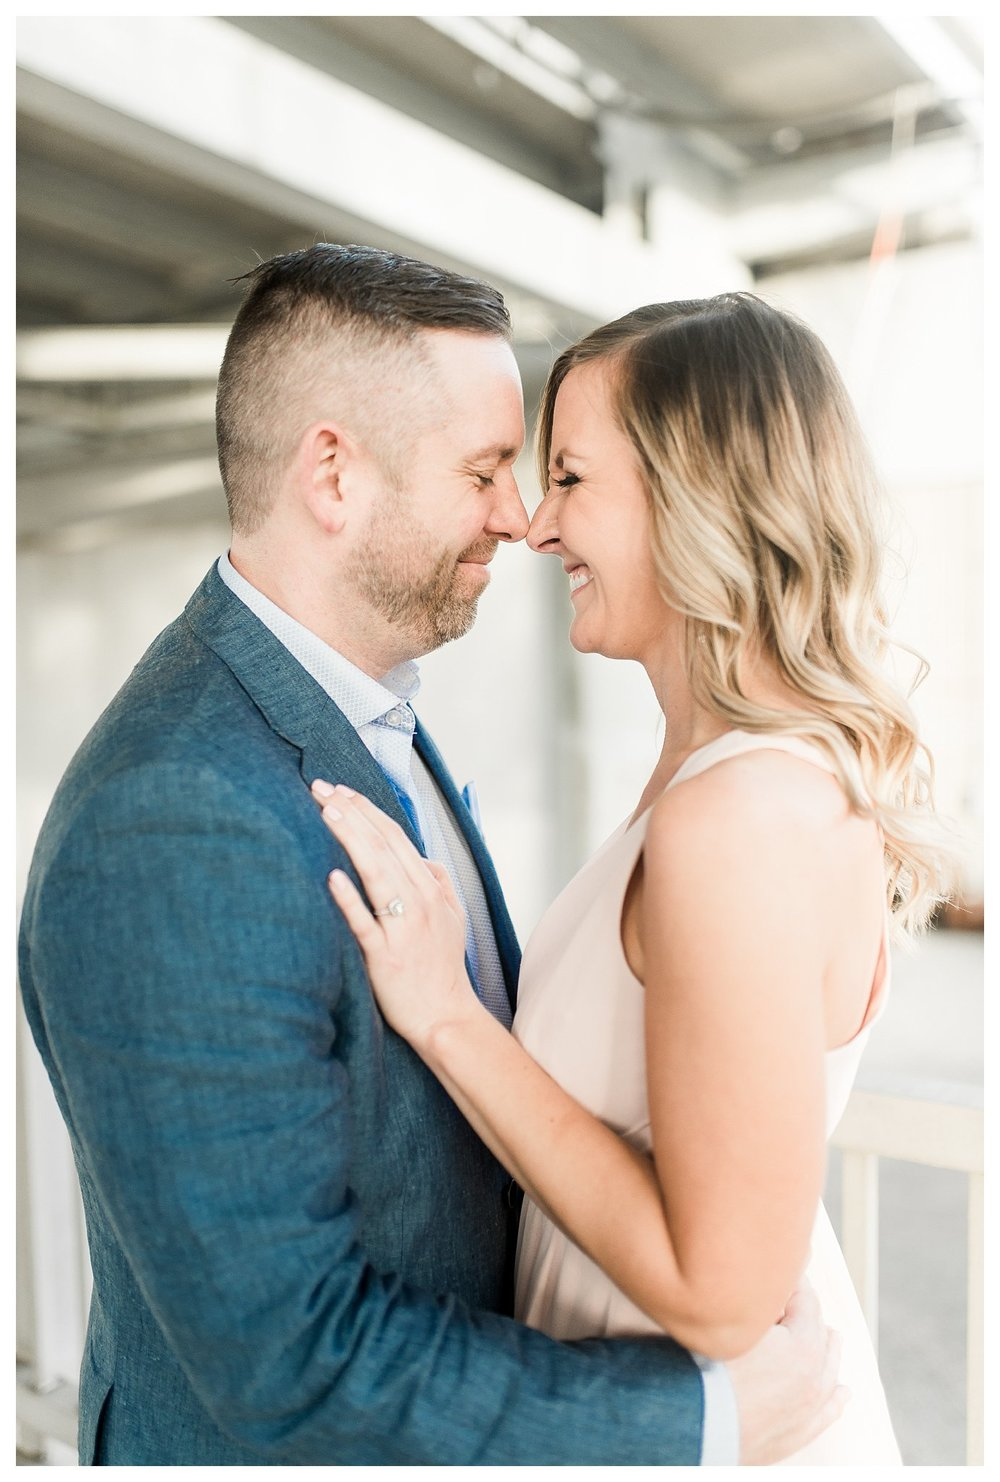 everleigh-photography-cincinnati-wedding-photographer-cincinnati-engagement-photographer-findlay-market-engagement-adam-and-jessica-11